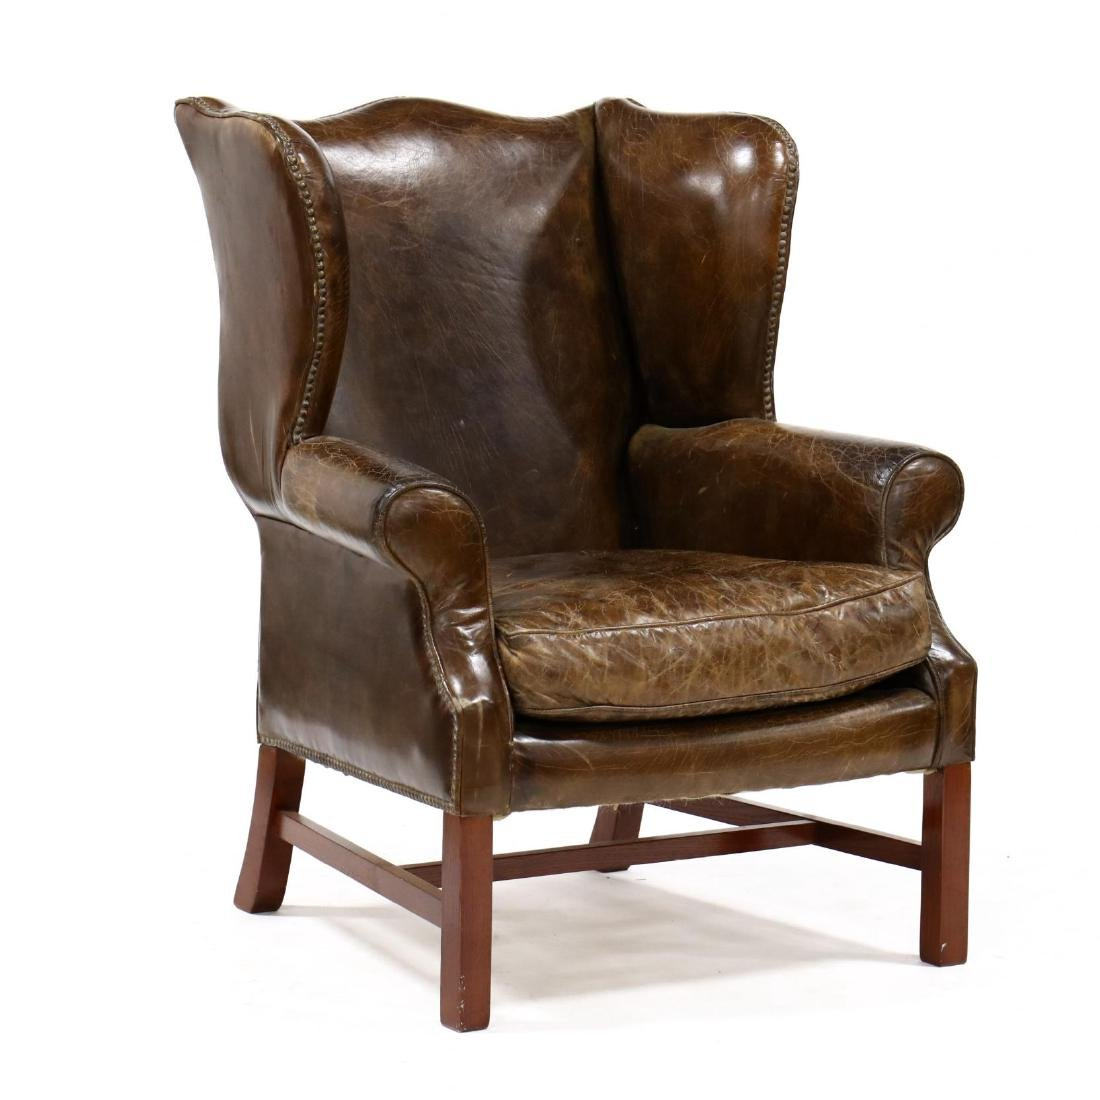 Chippendale Style Distressed Leather Wing Back Chair